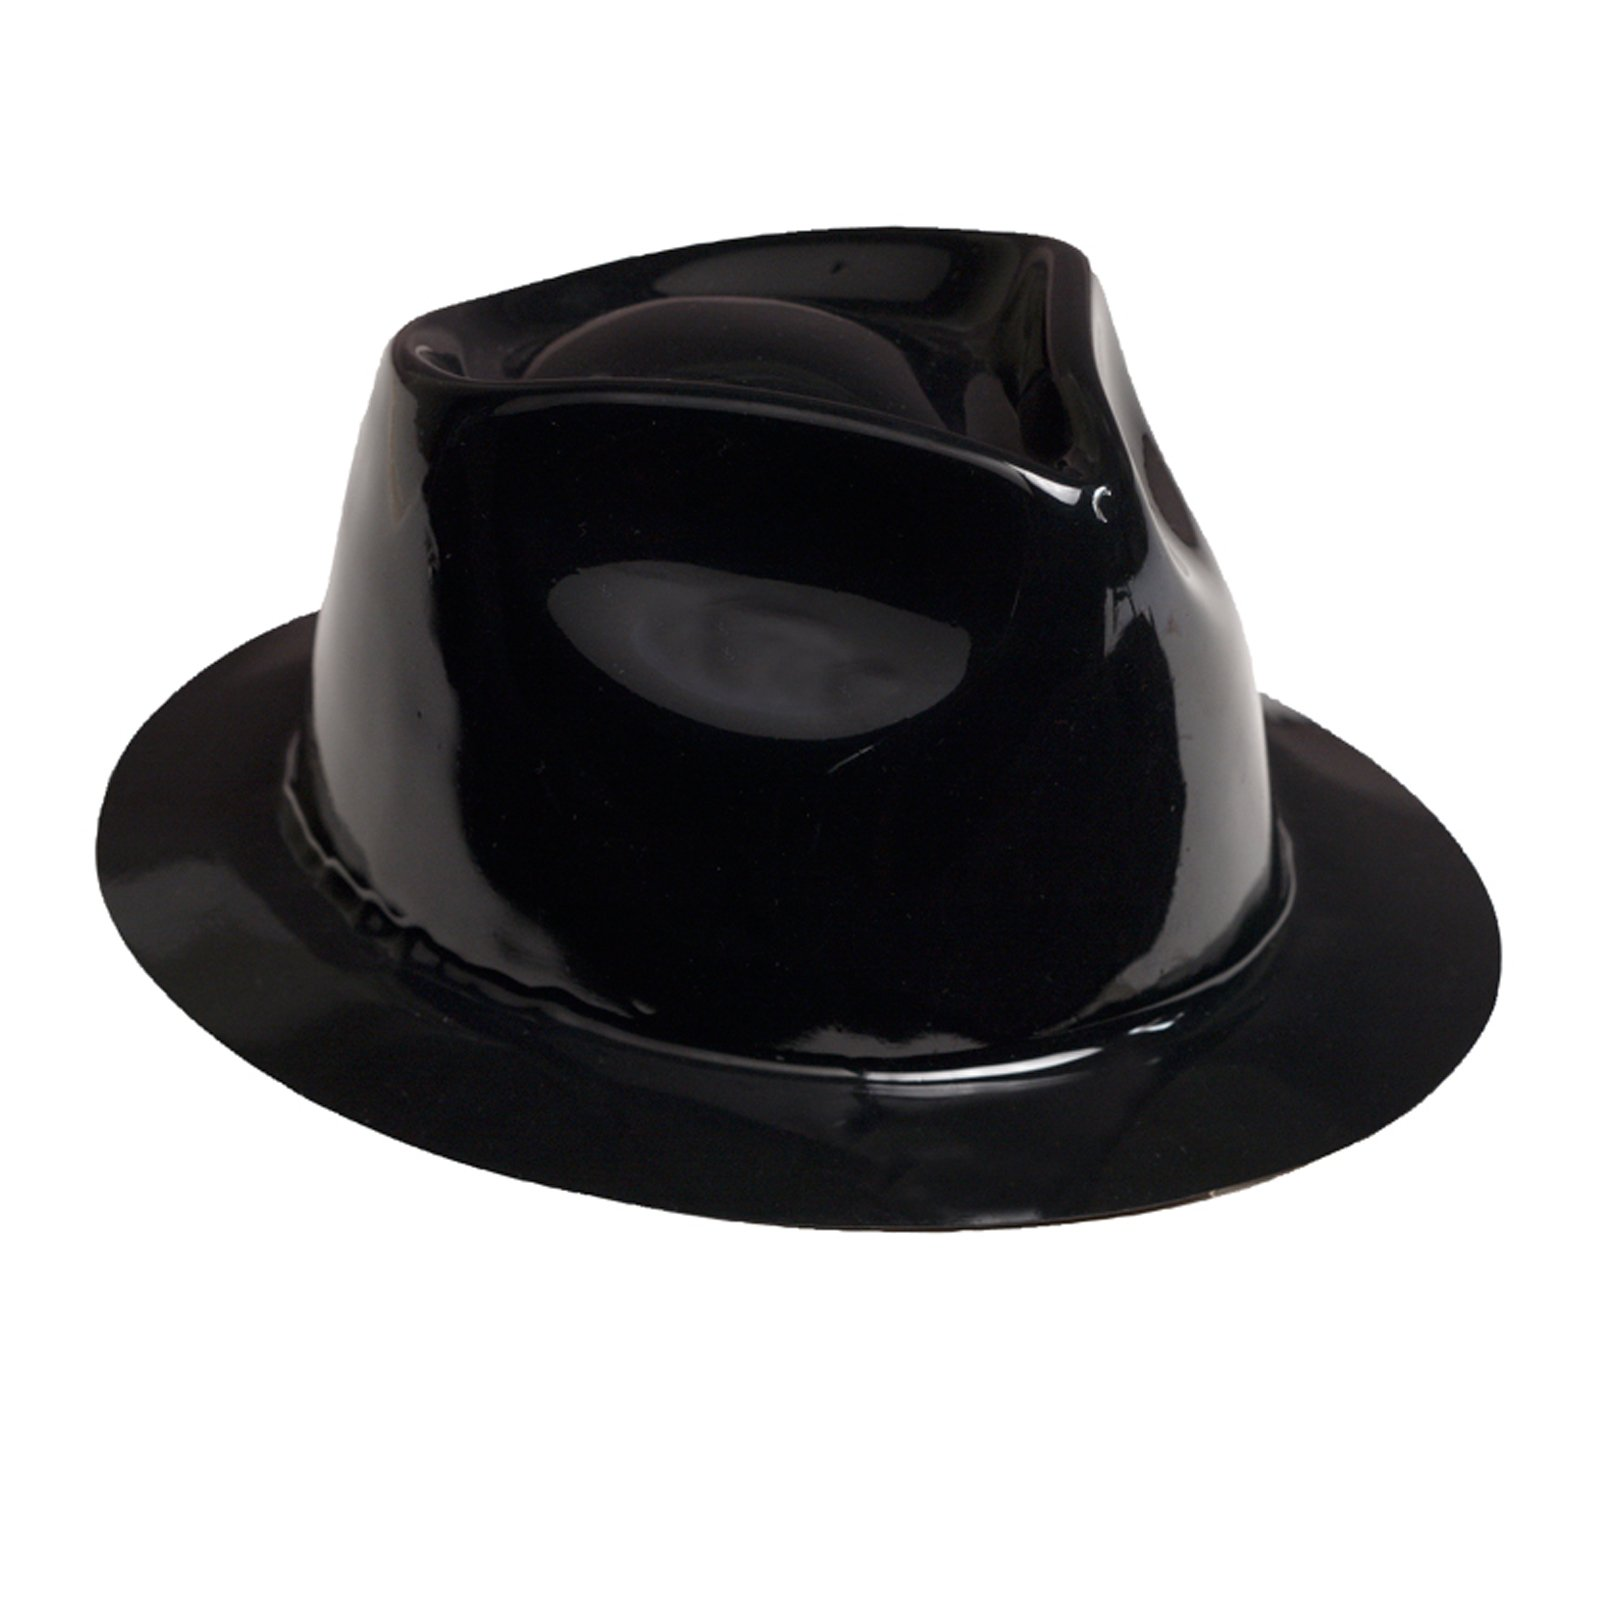 Top Secret Fedora Hat